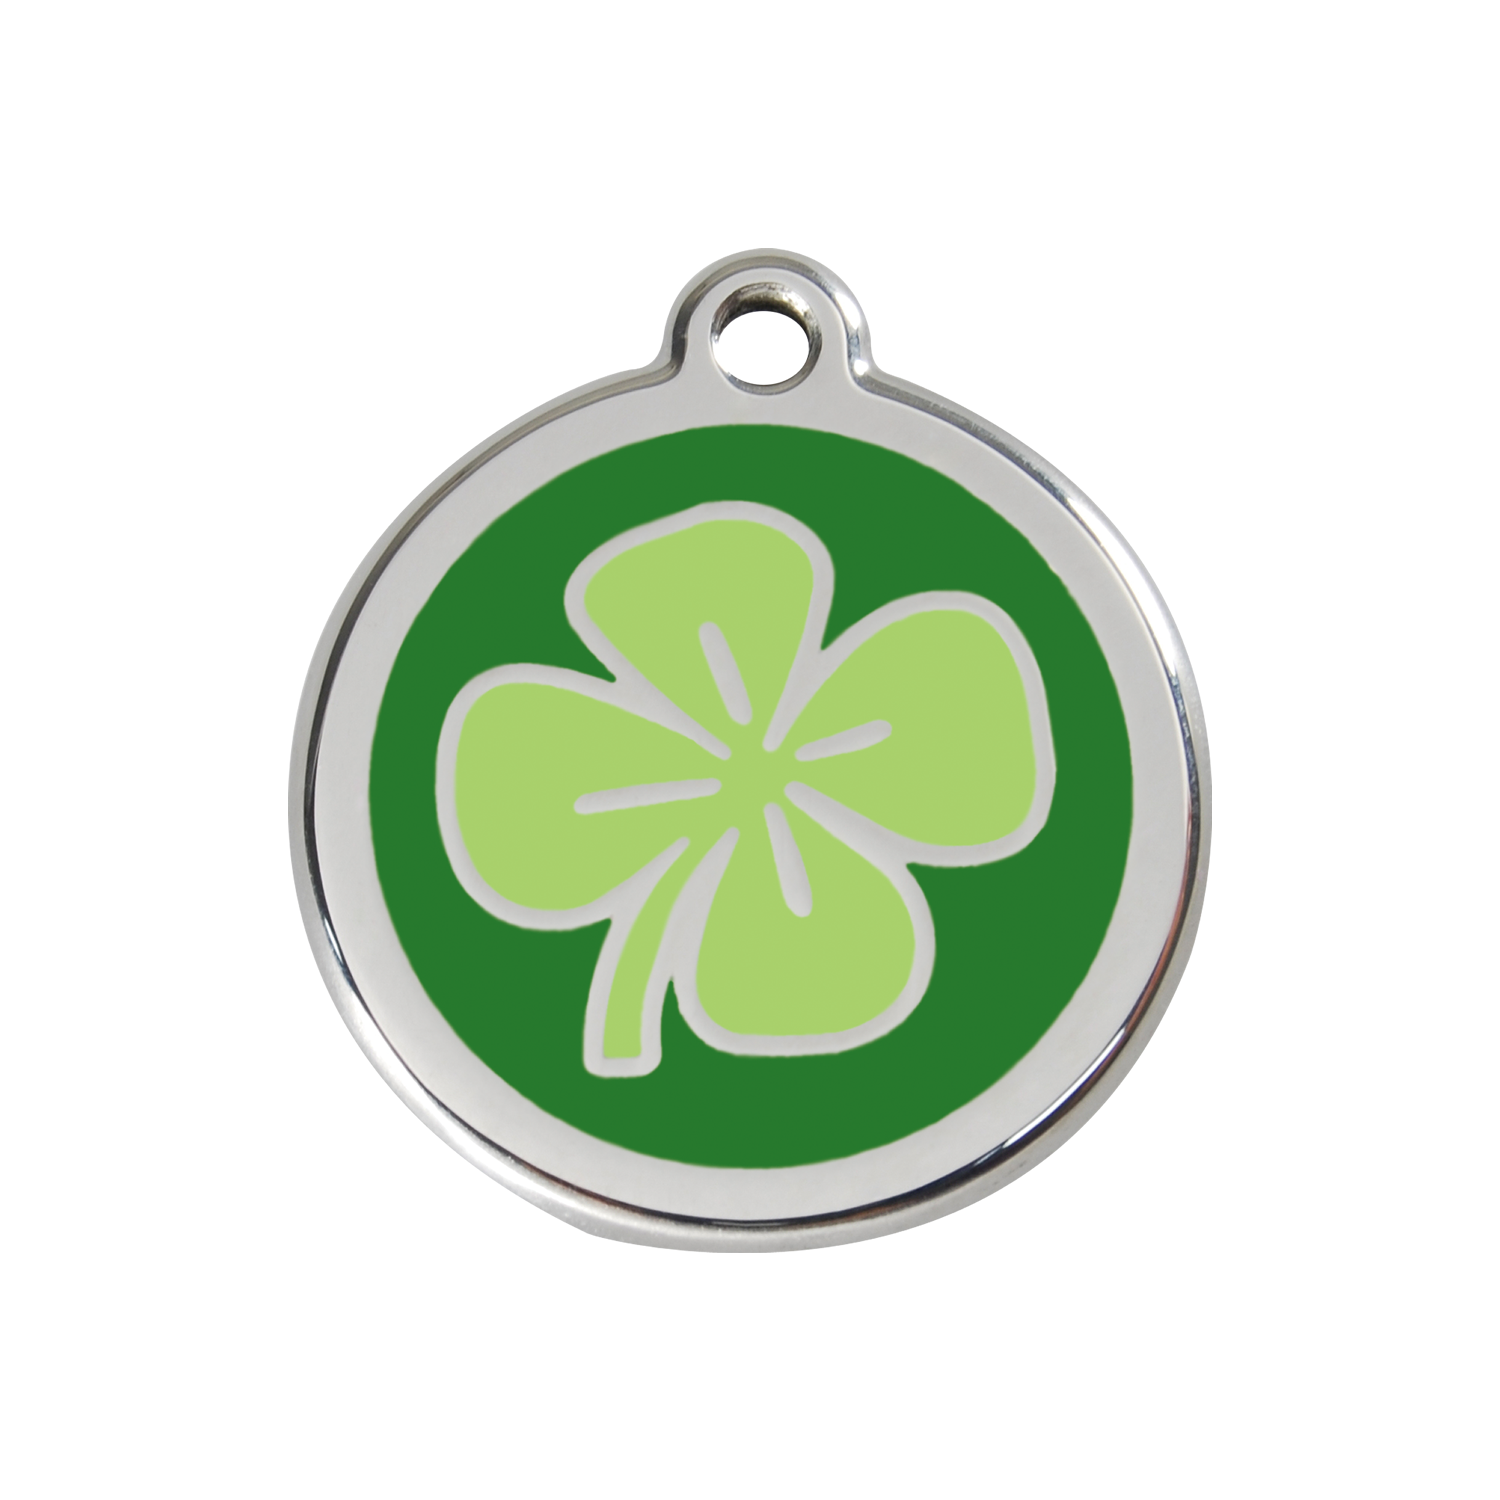 Green Clover Medium Enamel & Stainless Steel Tag>